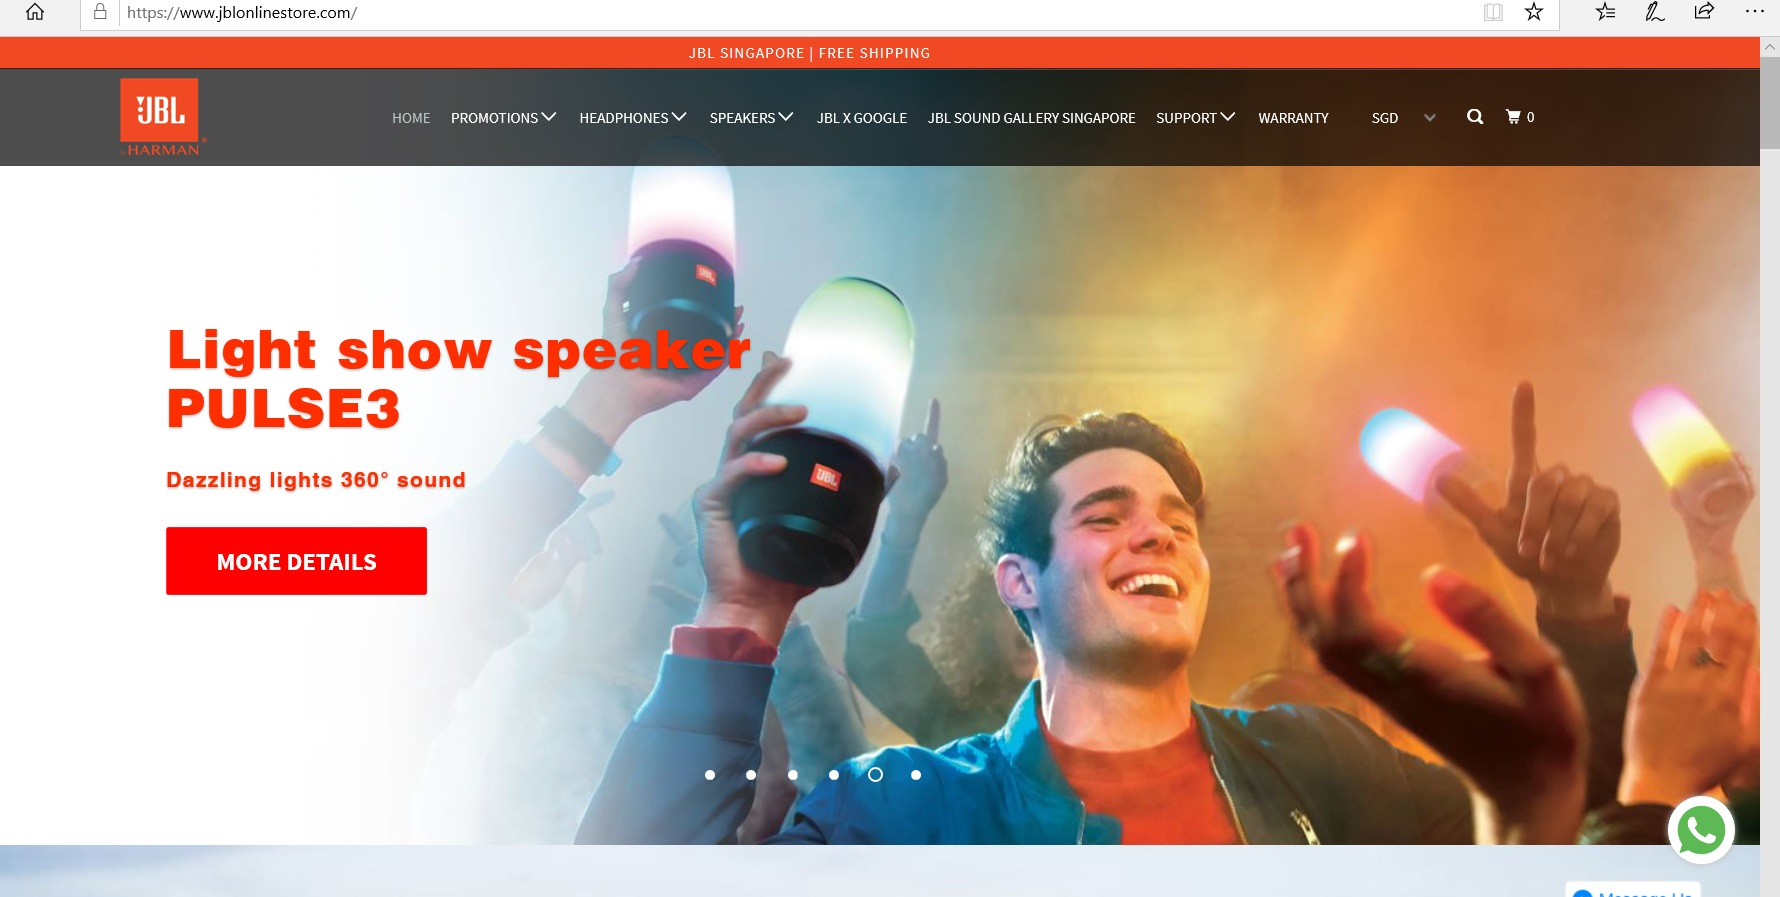 JBL website homepage.